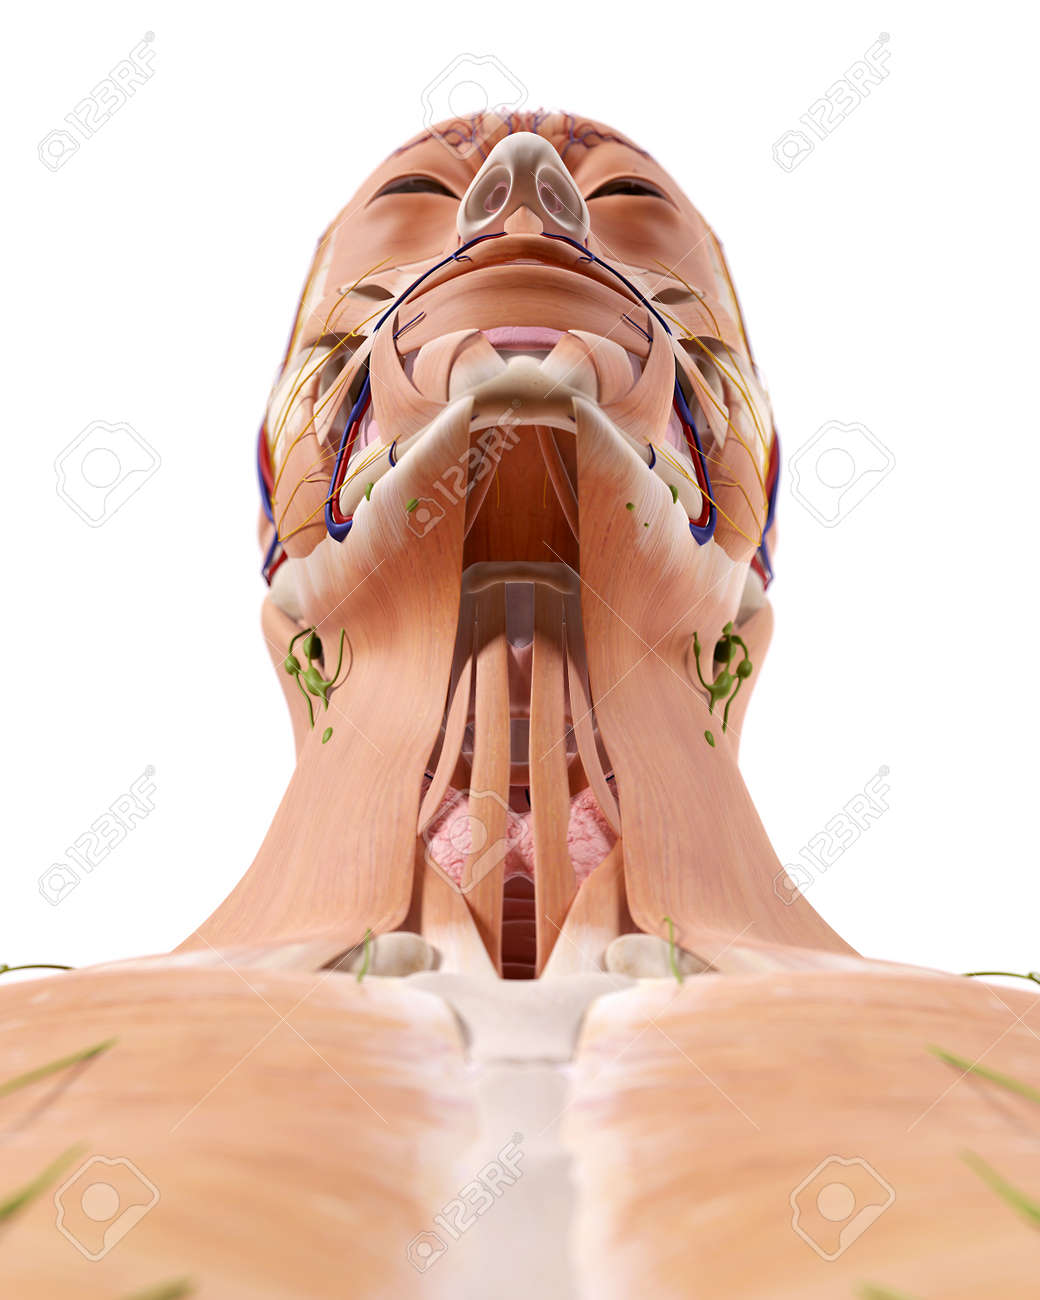 Medically Accurate Illustration Of The Throat Anatomy Stock Photo ...